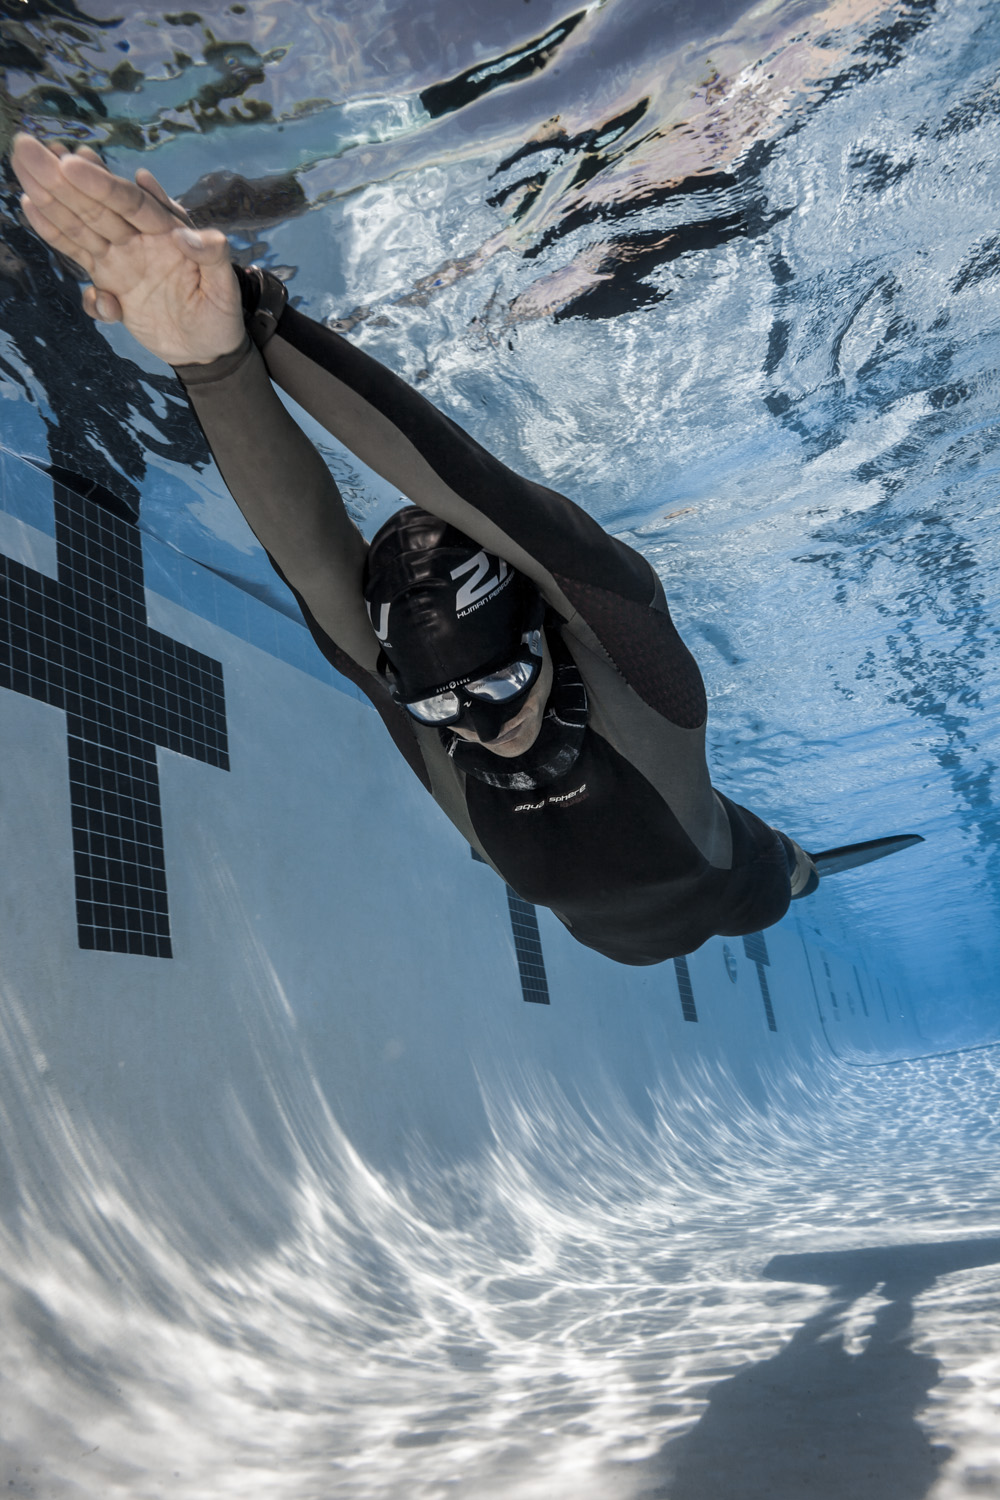 Freediver training with mono fin for dynamic swim.